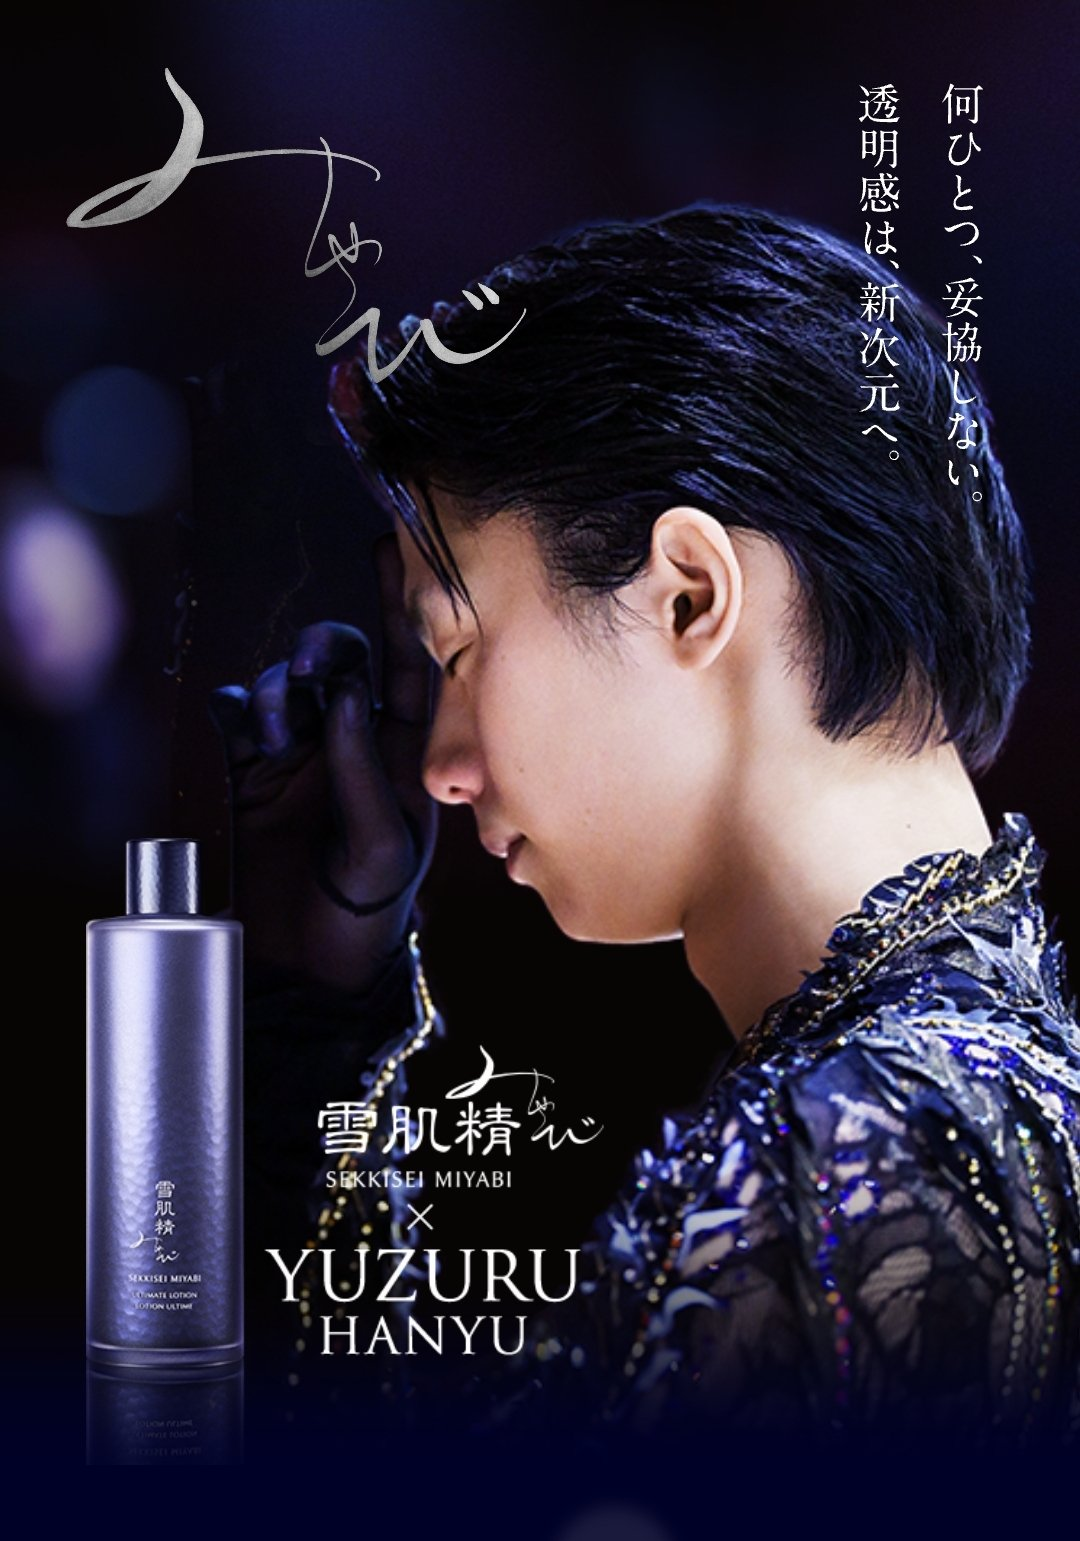 YuzuNews 14, 15, 16, 17, 18, 22 gennaio 2020 – Yuzuru Hanyu a Stars On Ice Japan!